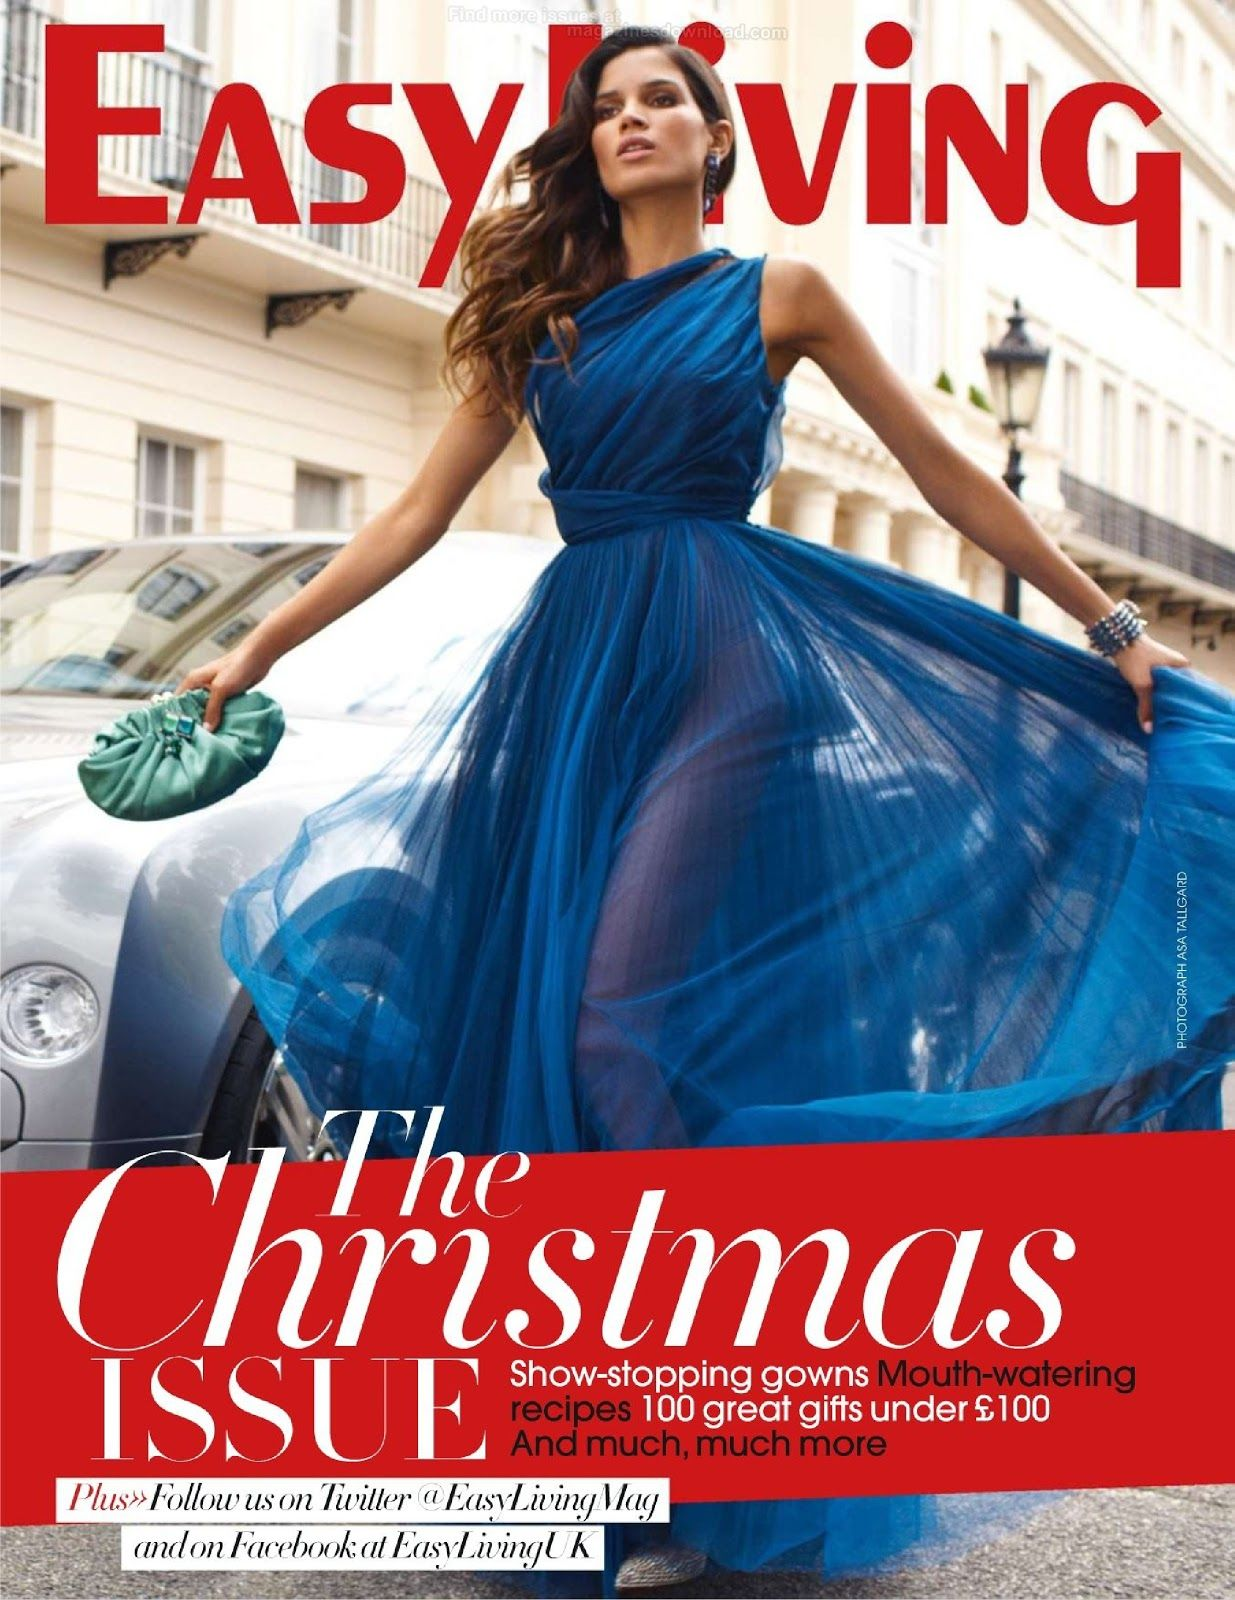 Raica-Oliveira-in-Easy-Living-December-2012-1